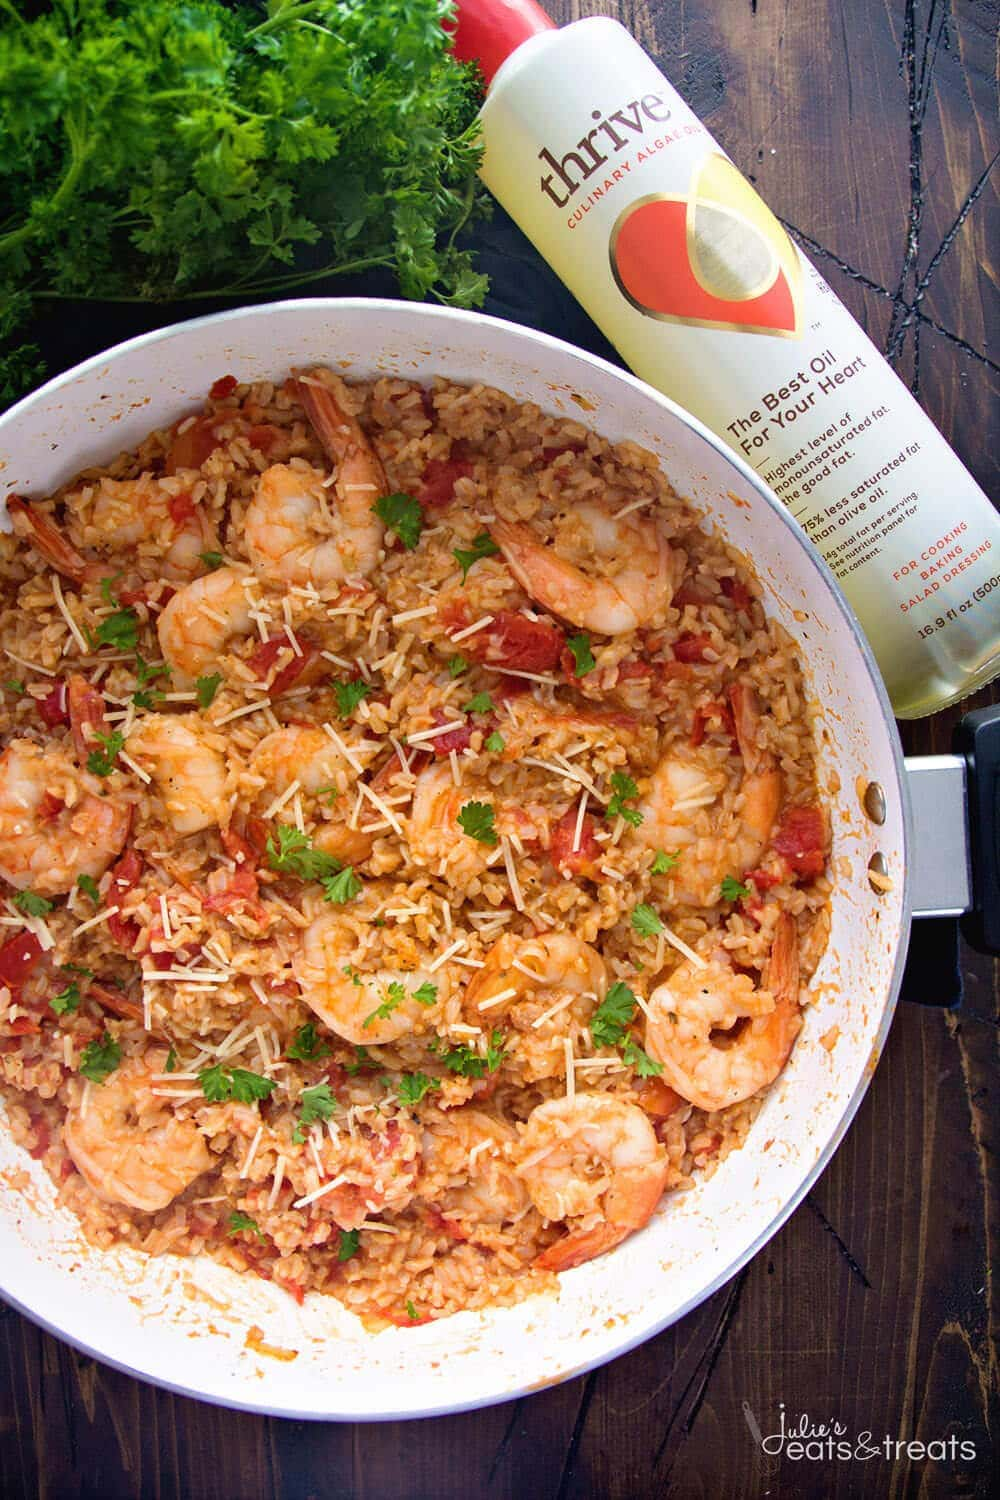 Light italian shrimp rice skillet recipe julies eats treats light italian shrimp rice skillet recipe easy one pot meal thats full of forumfinder Gallery